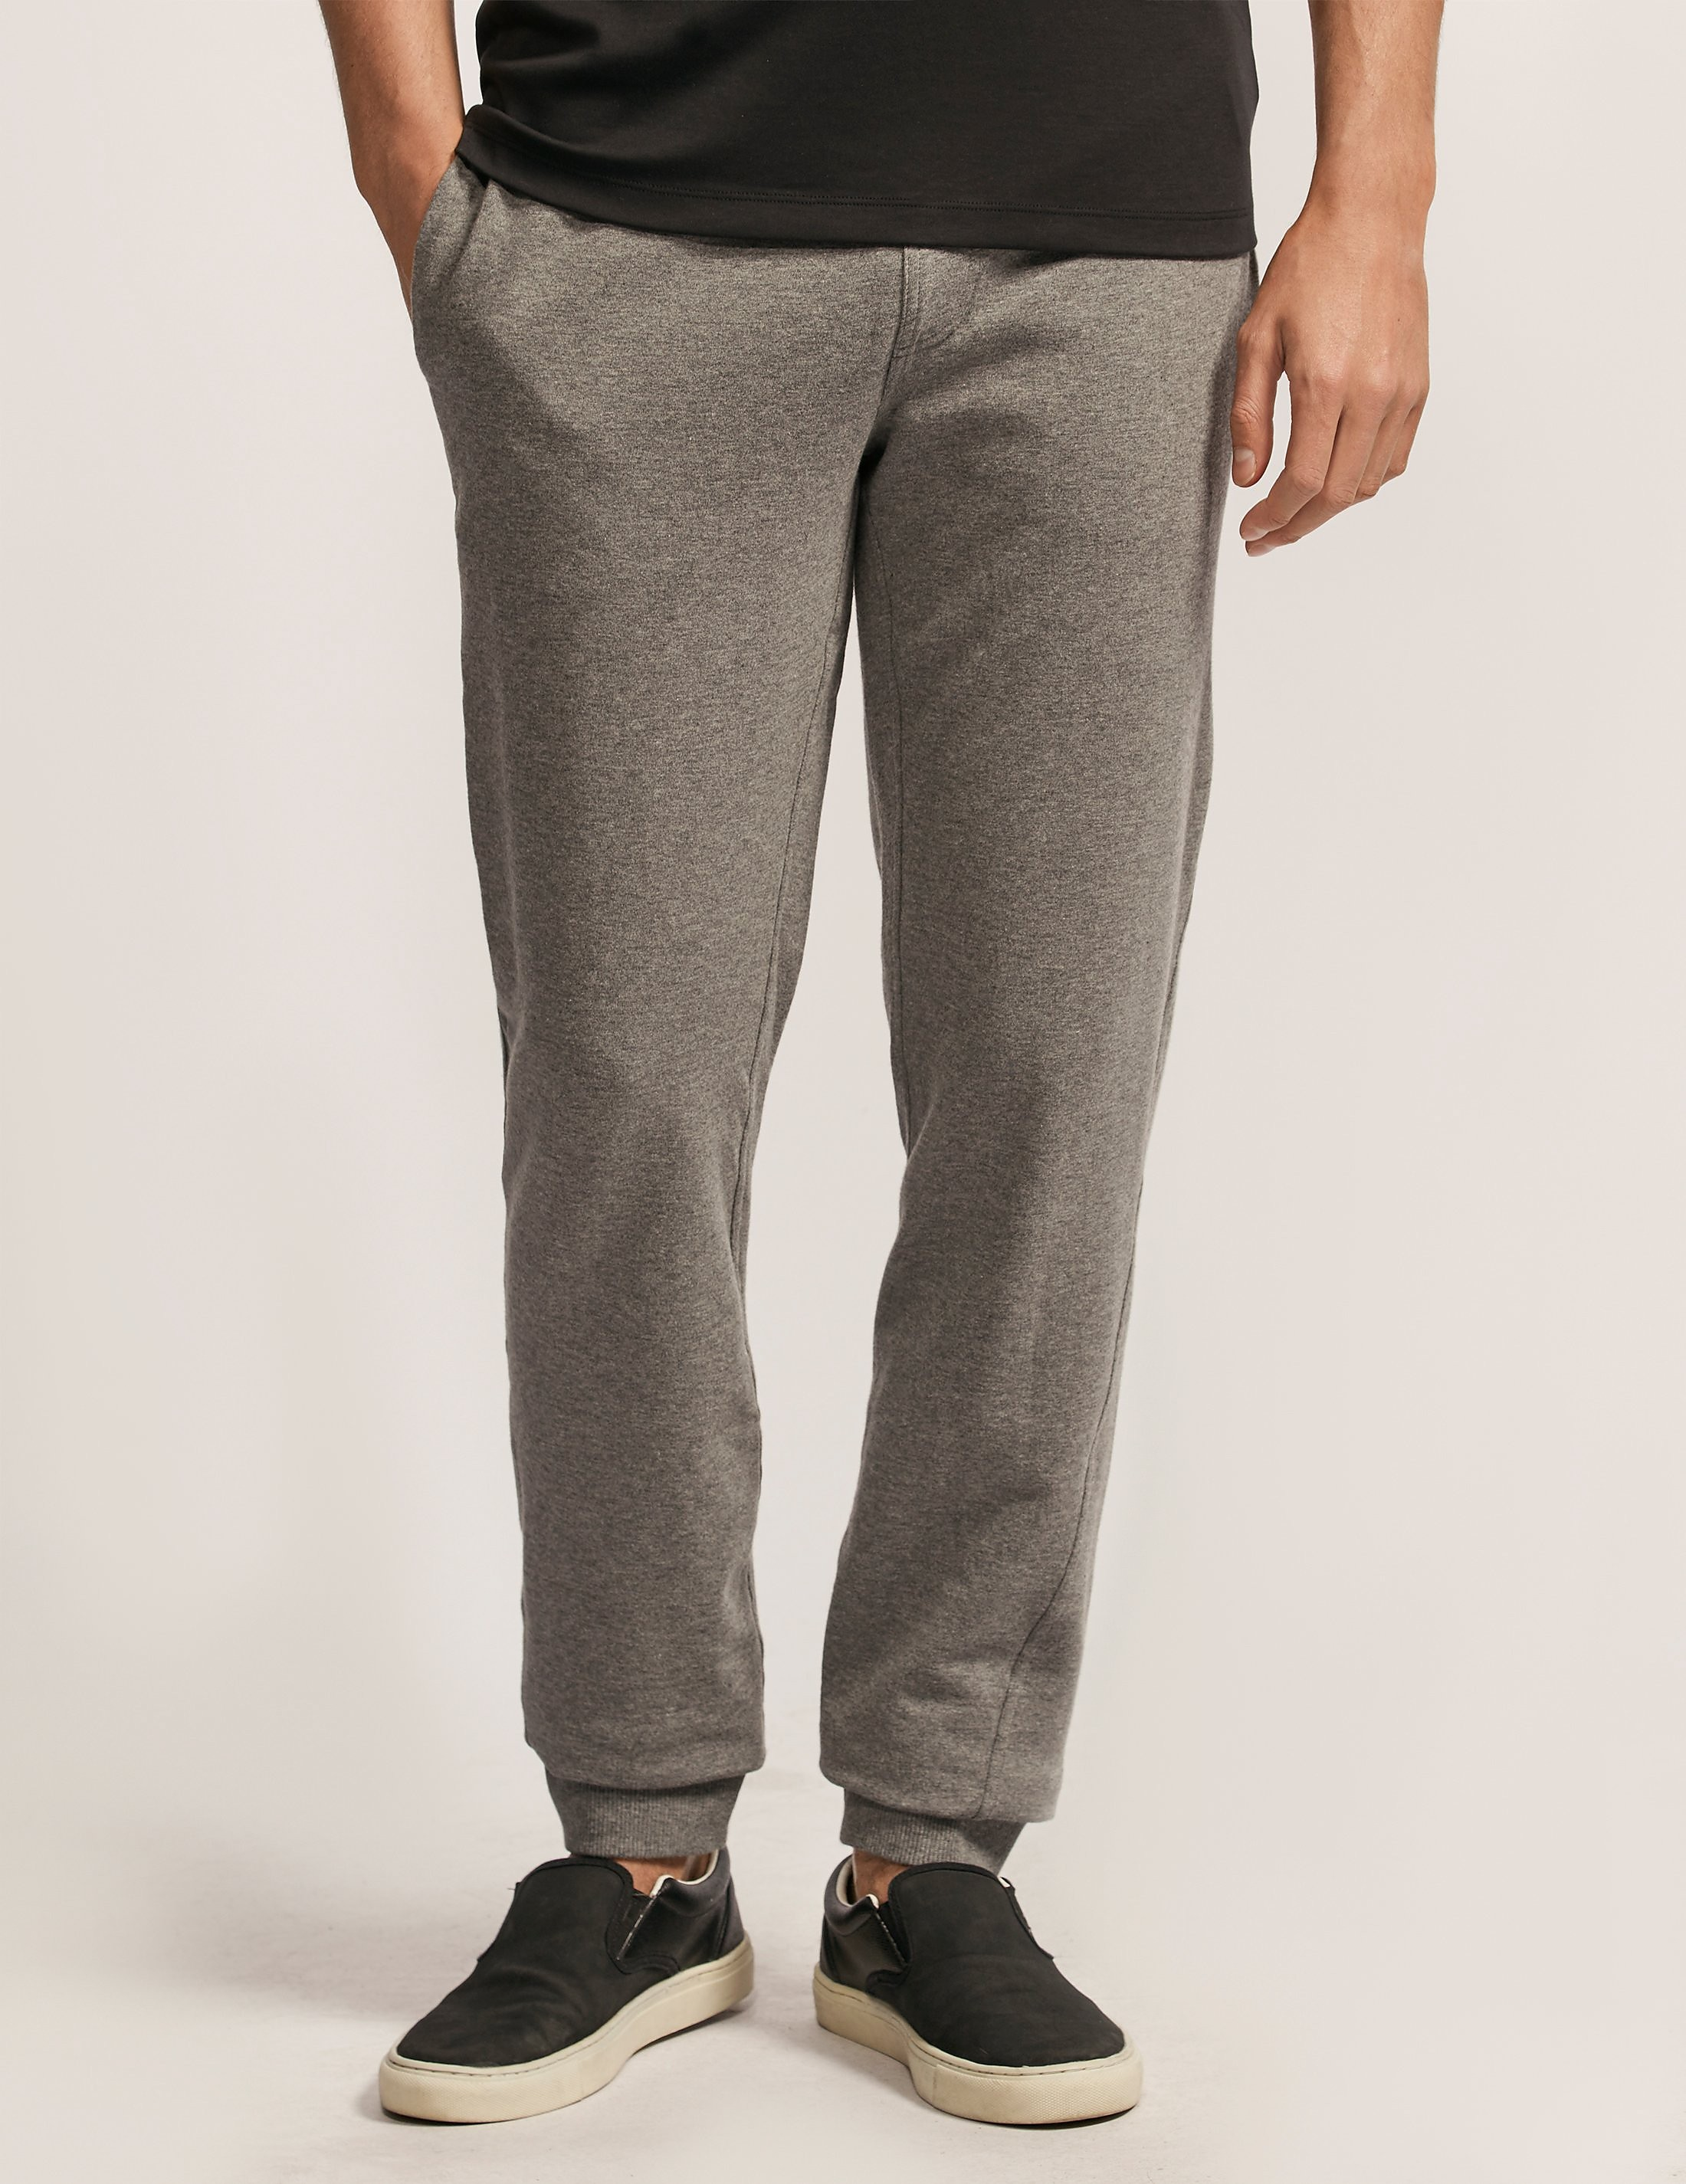 Michael Kors Fleece Cuffed Track Pants